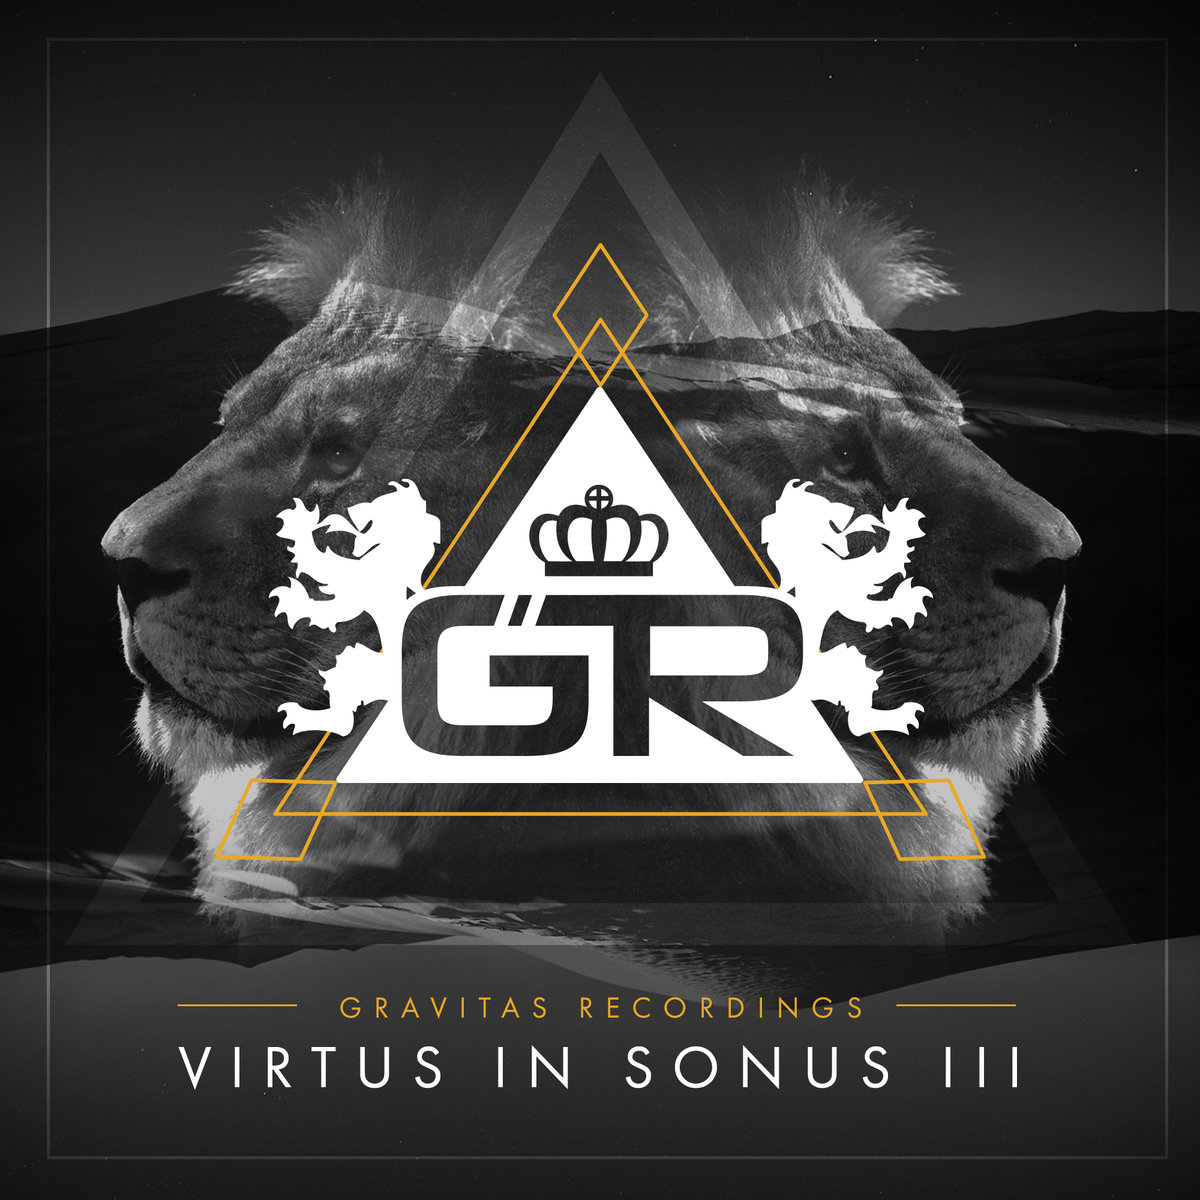 D.V.S* - Burst @ 'Virtus In Sonus III' album (Austin)